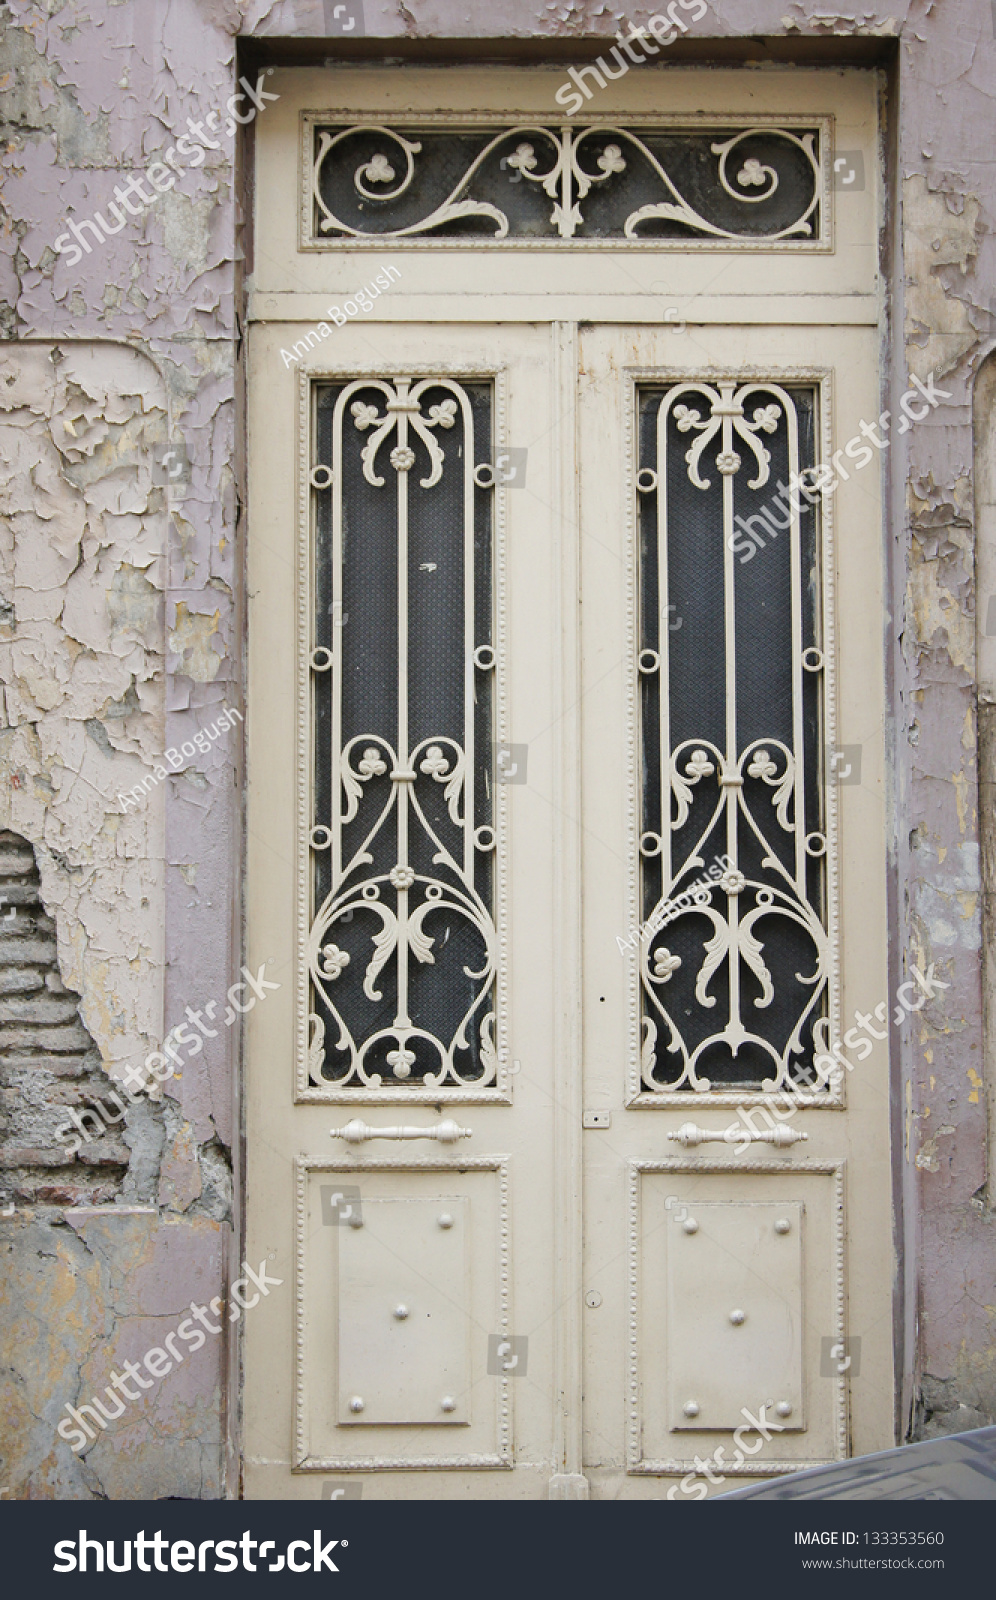 Art nouveau door decoration in forged iron in tbilisi old for Antique door decoration